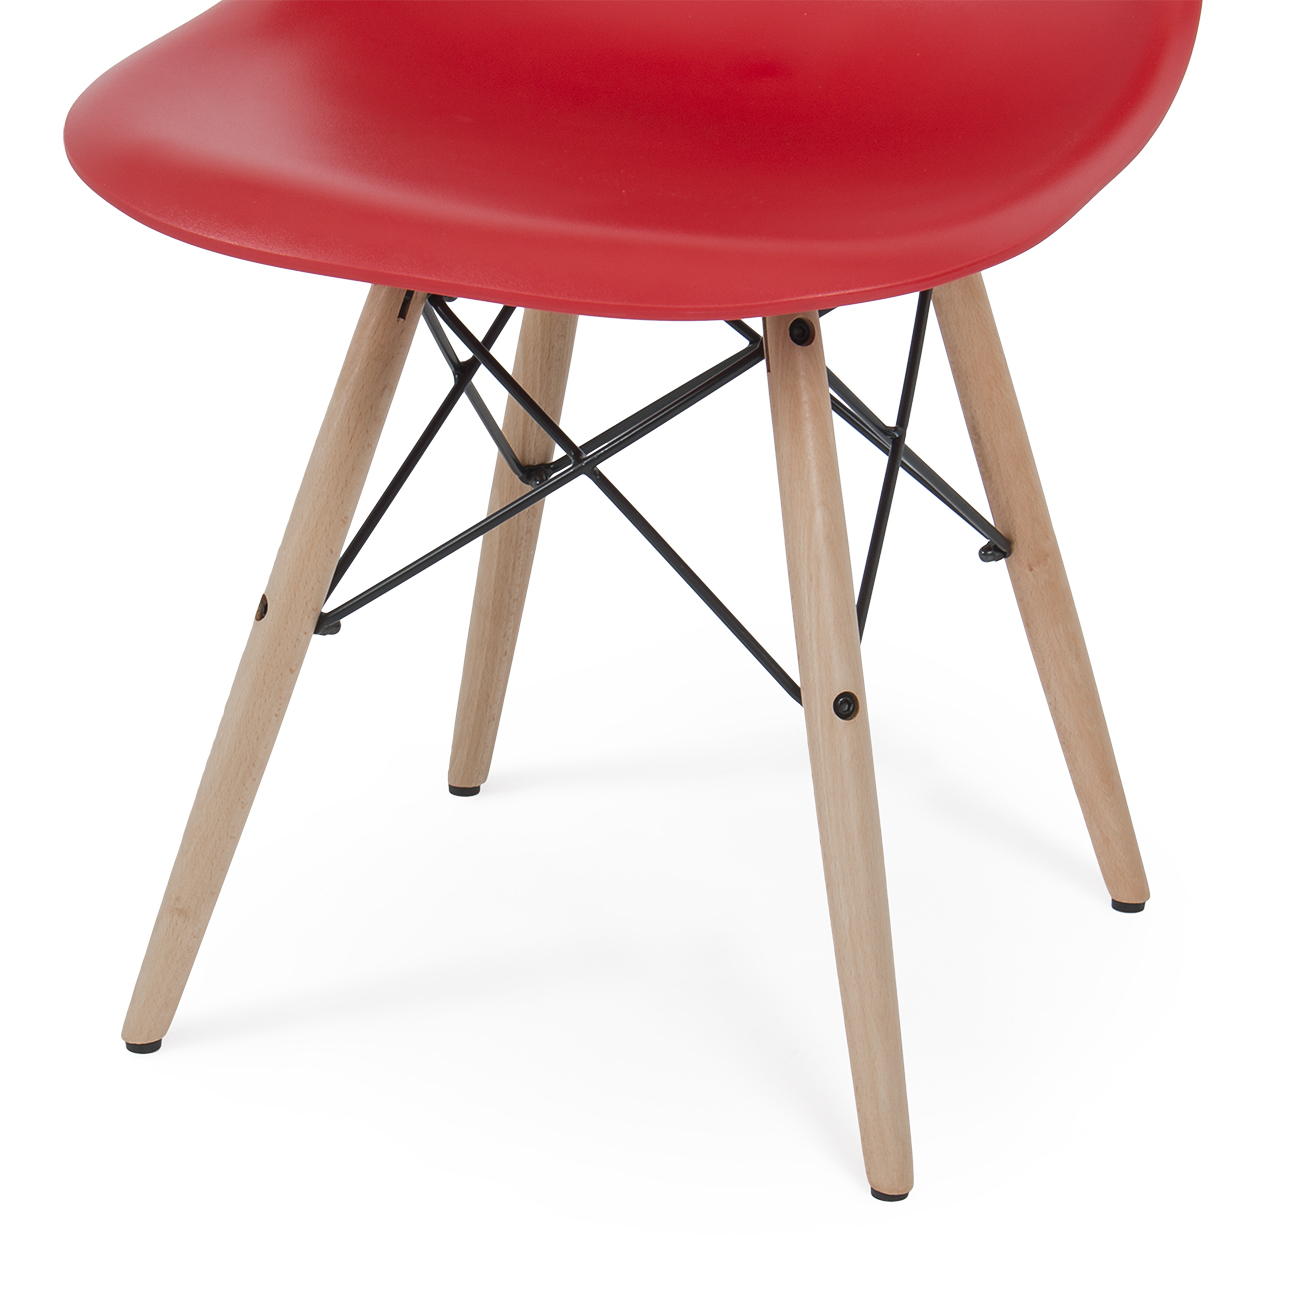 Eames Premium Molded ABS Eiffel Dowel Leg DSW Style Dining  : 014 hg 14087 rd5 from www.ebay.com size 1300 x 1300 jpeg 427kB